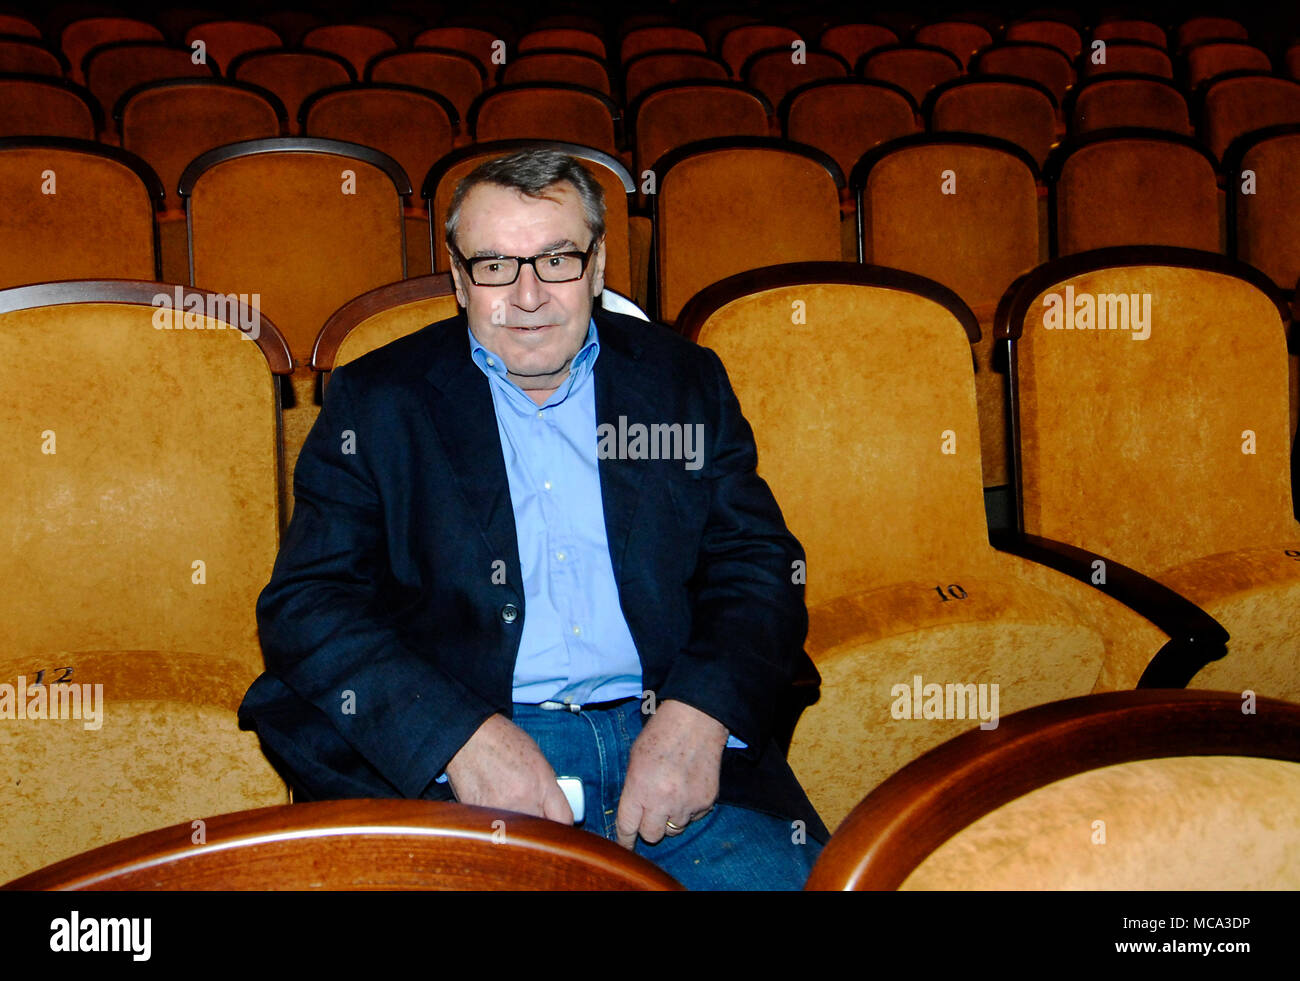 ***FILE PHOTO FROM OCTOBER 7, 2008*** Czech film director of Czech origin Milos Forman, who died at the age of 86 in the USA on Friday, was one of the biggest personalities of the Czech film 'New Wave' from the 1960s and the most successful Czech film maker who made his mark abroad.Forman was born on February 18, 1932, in Caslav, central Bohemia. Both of his parents died in a Nazi concentration camp during WWII.After the war, Forman attended a boarding school for wartime orphans and a grammar school in Podebrady, central Bohemia. Among his schoolmates were Havel and later film-maker Ivan Passe - Stock Image